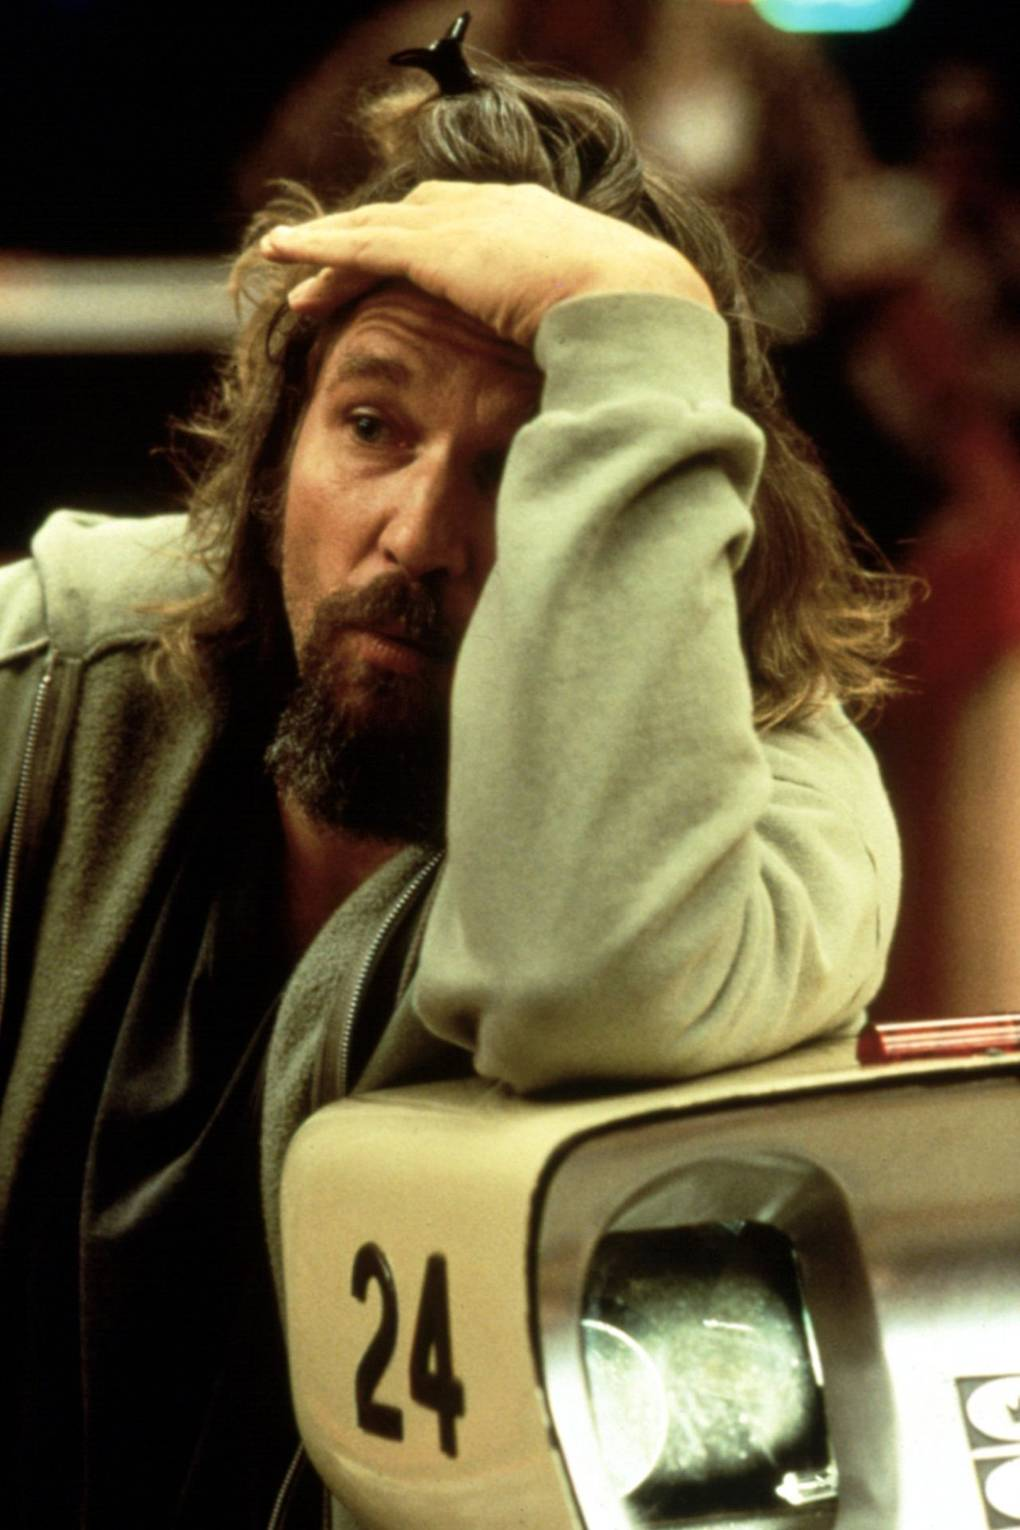 Big Lebowski review: why Jeff \'The Dude\' Lebowksi is a loser ...